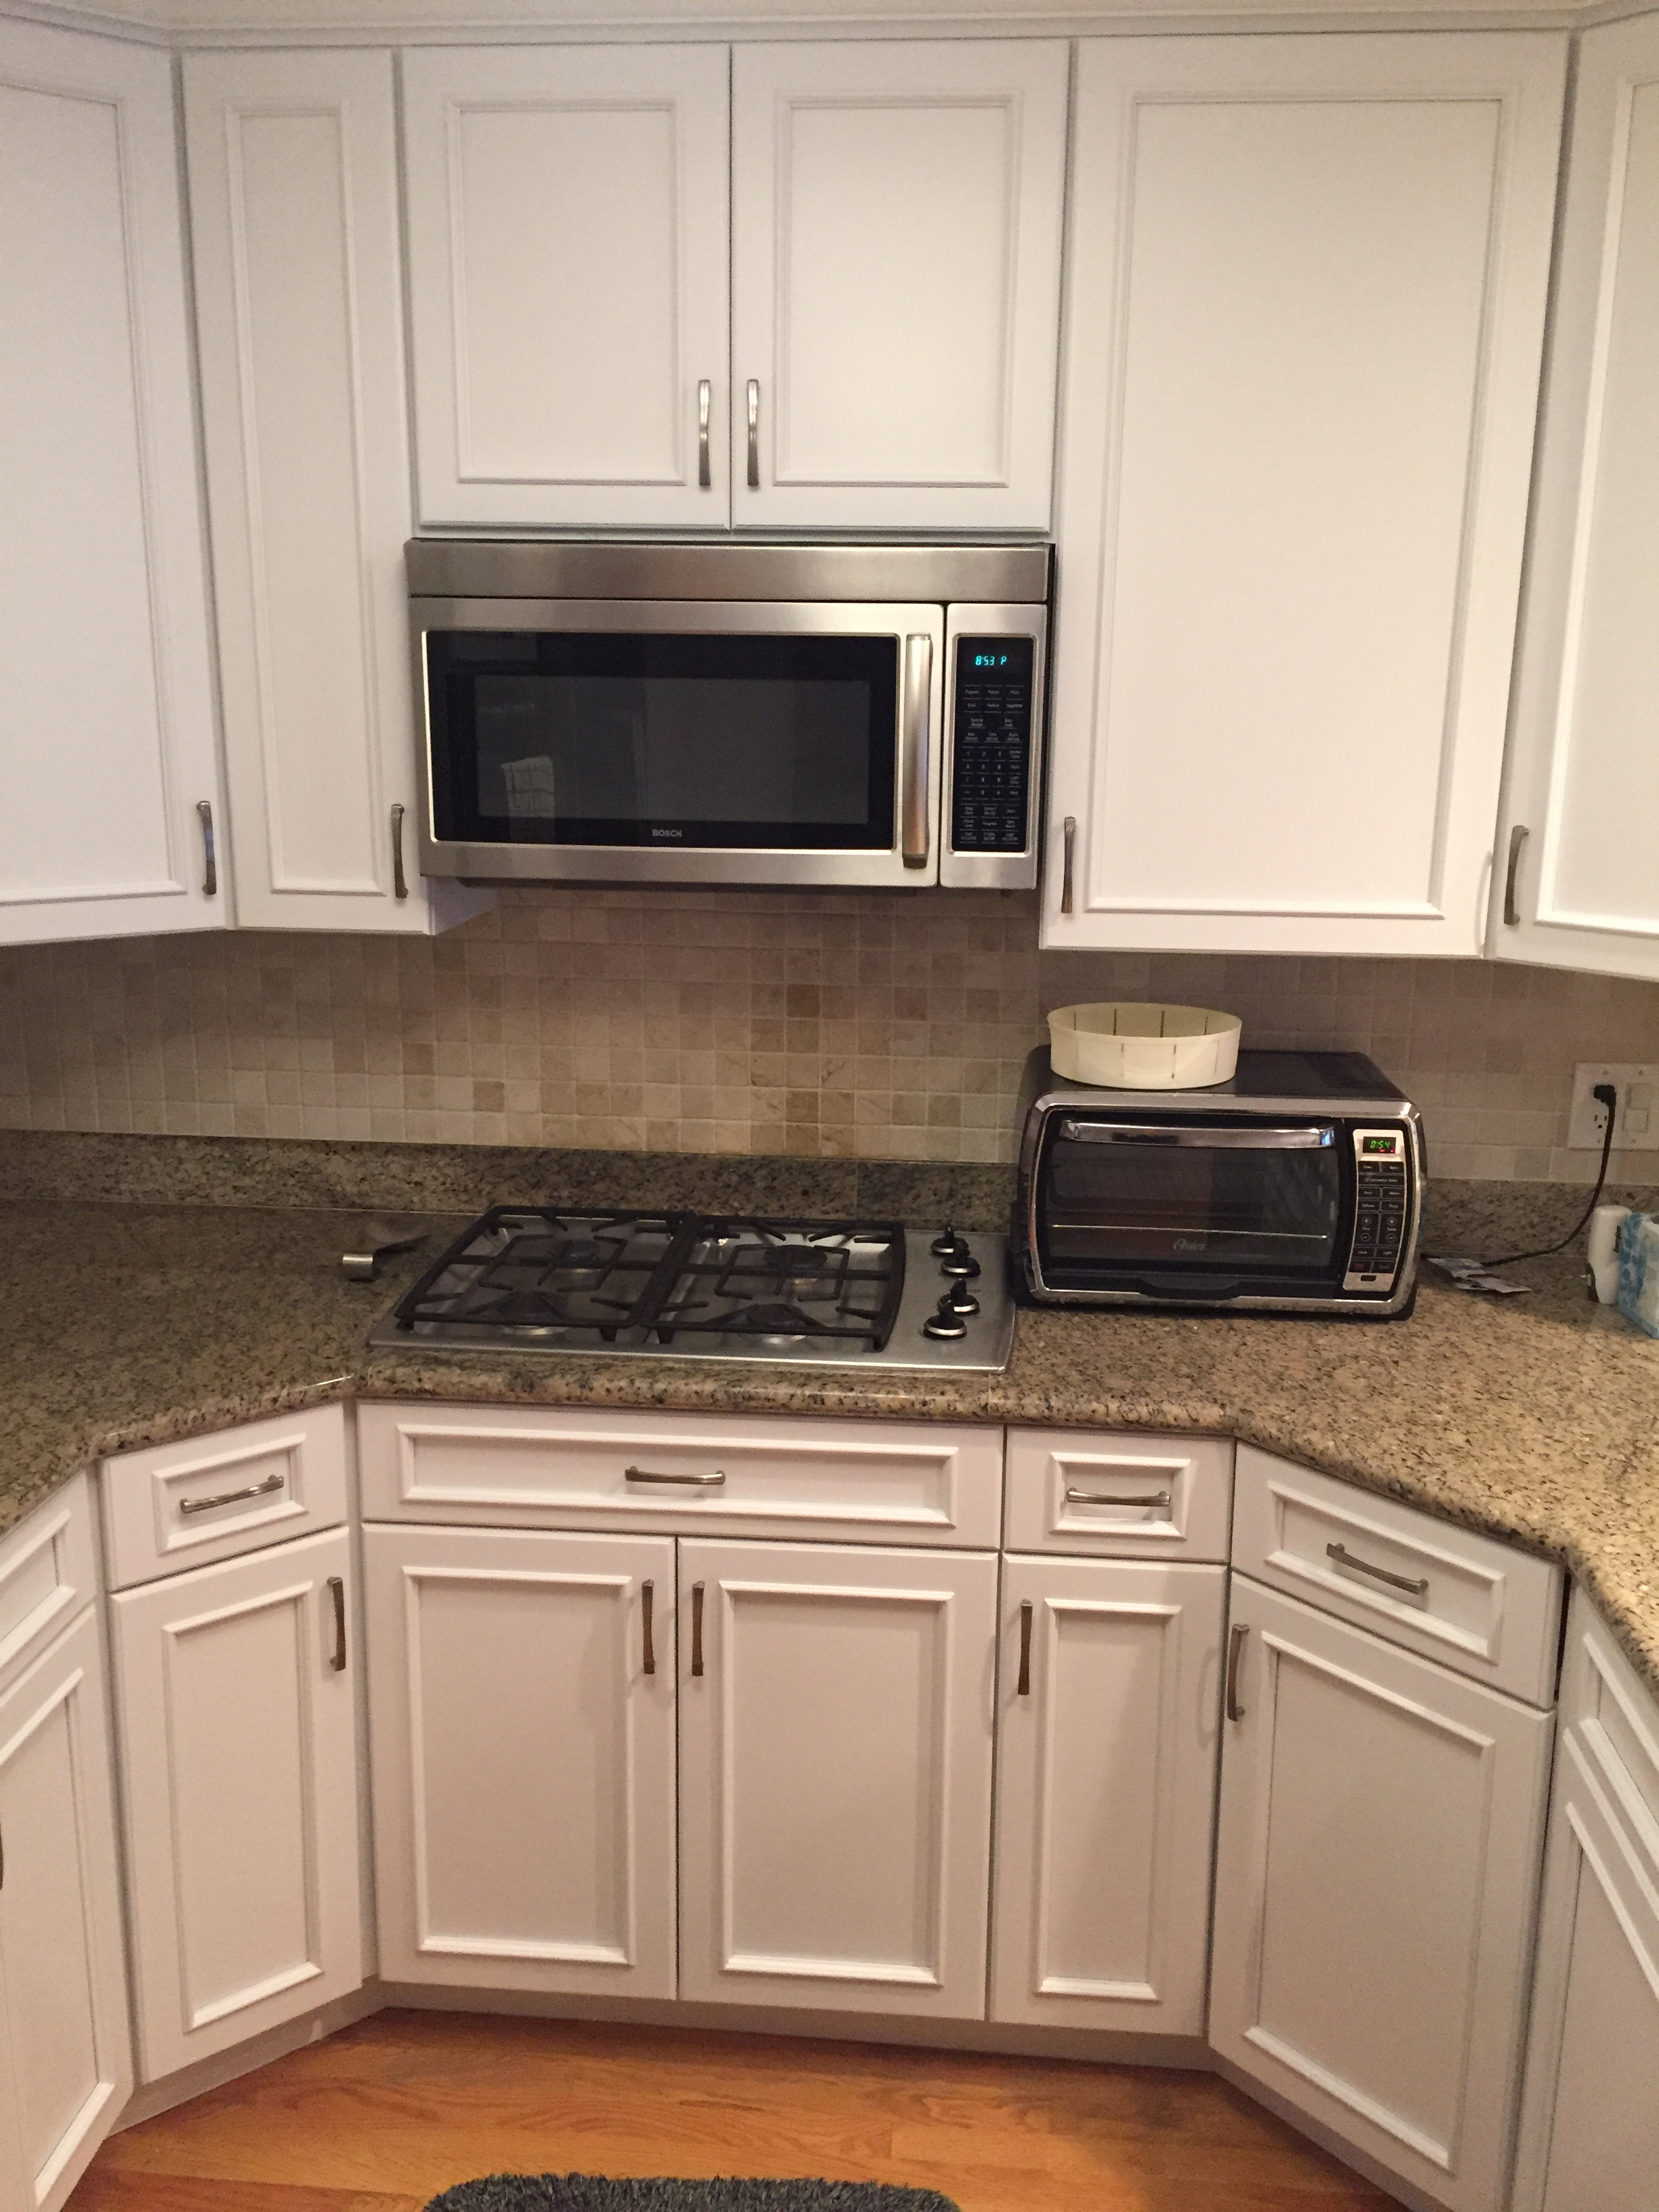 kitchen cabinets refinishing chicago lincoln park kitchen cabinets chicago Kitchen Cabinets Refinishing Chicago Lincoln Park